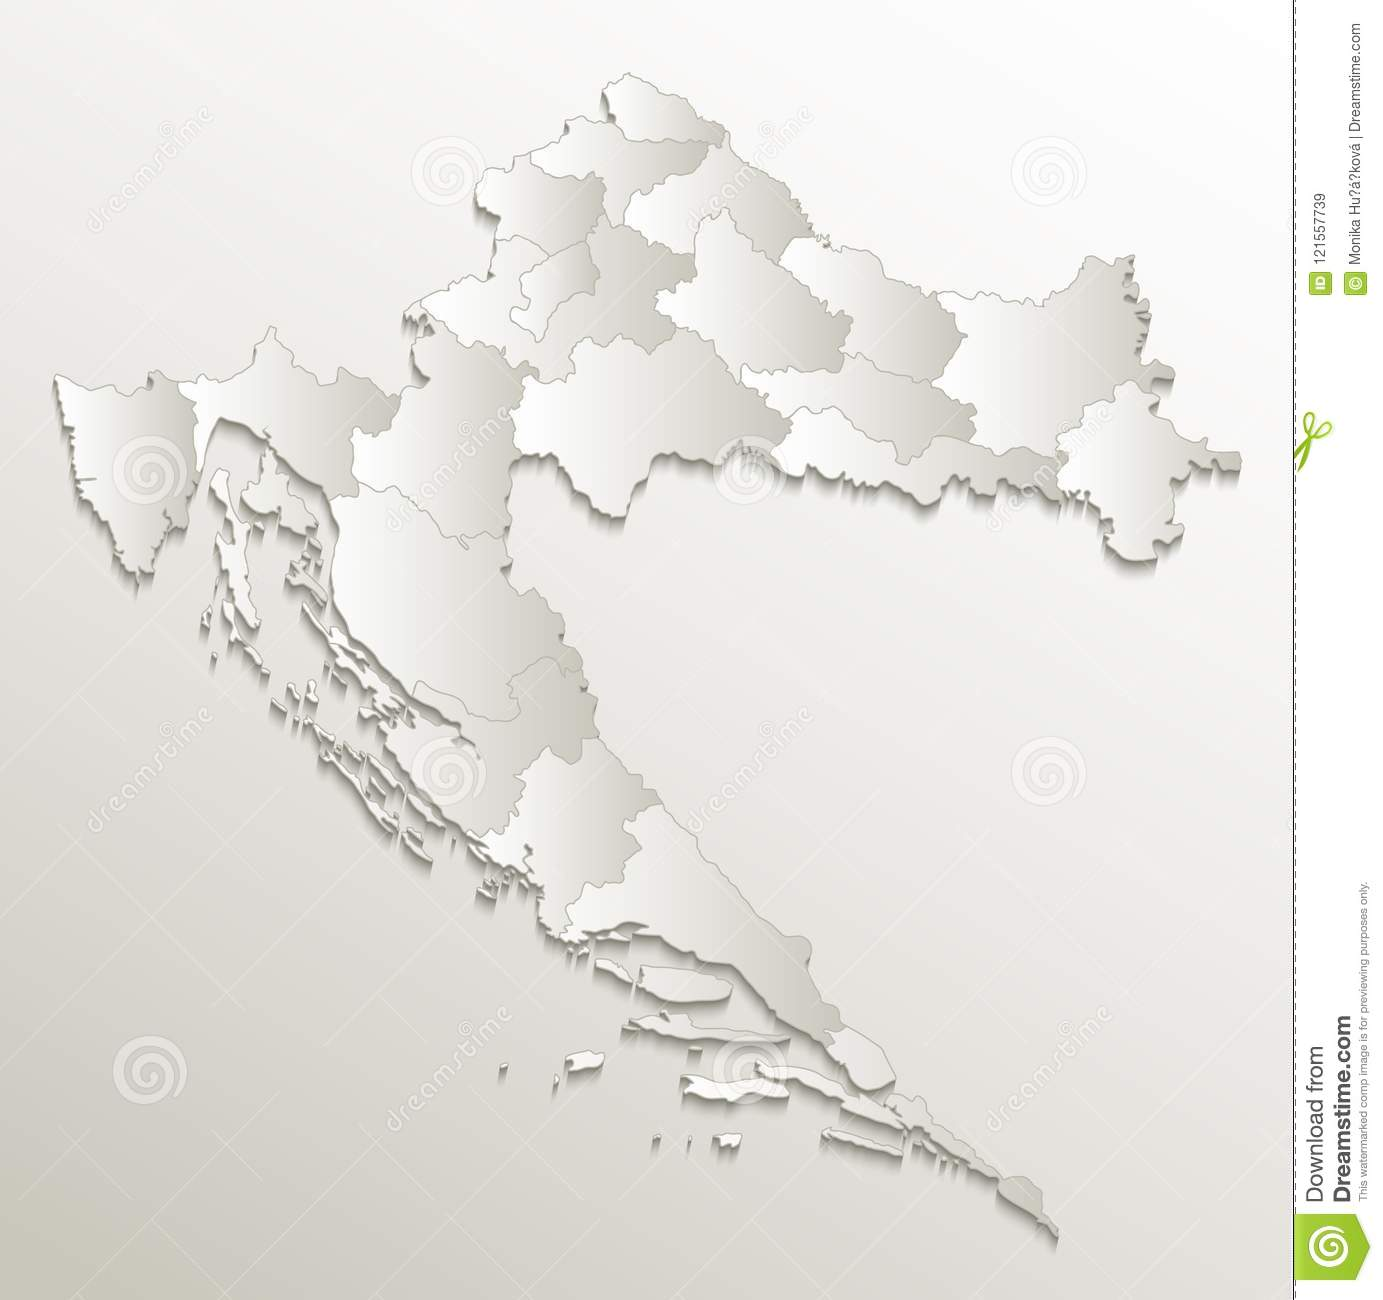 Croatia Map Separate Region Individual Blank Card Paper 3D Natural on blank map of australia, blank continent map worksheet, blank map of north america, blank map of byzantine empire, blank map mountains, blank map of oceans, blank map of rivers, blank map of peru, blank map of new york city, blank map of prime meridian, blank map of ancient rome, blank map of asia, blank continent map to label, blank map of europe, blank central and south america map, blank map of pakistan, blank map of united states, blank map of uk, blank map of california, blank map of egypt,